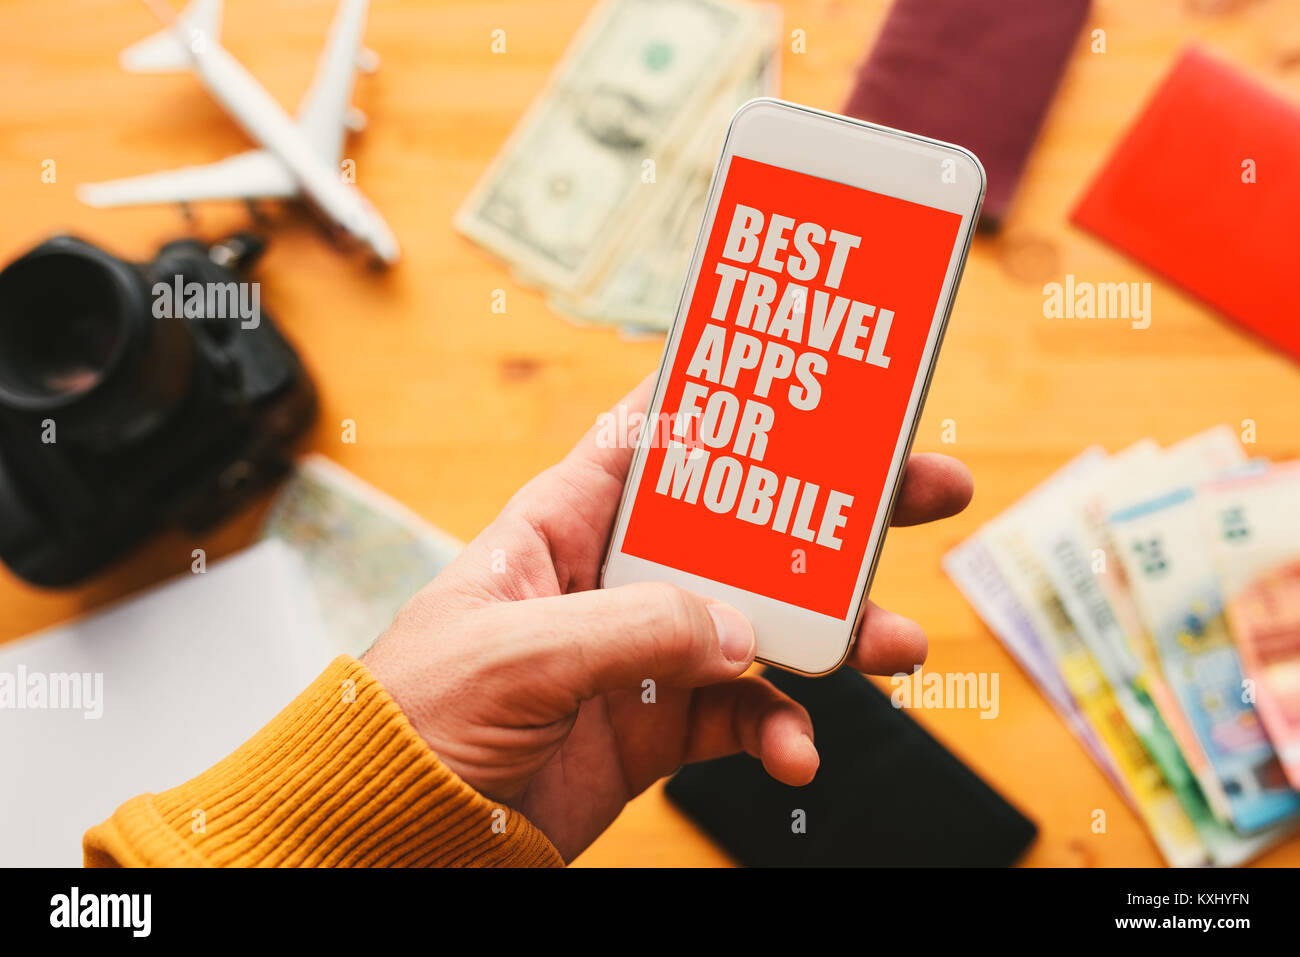 Best travel apps for mobile phone. Man holding smartphone with mock up application screen related to holiday vacation - Stock Image